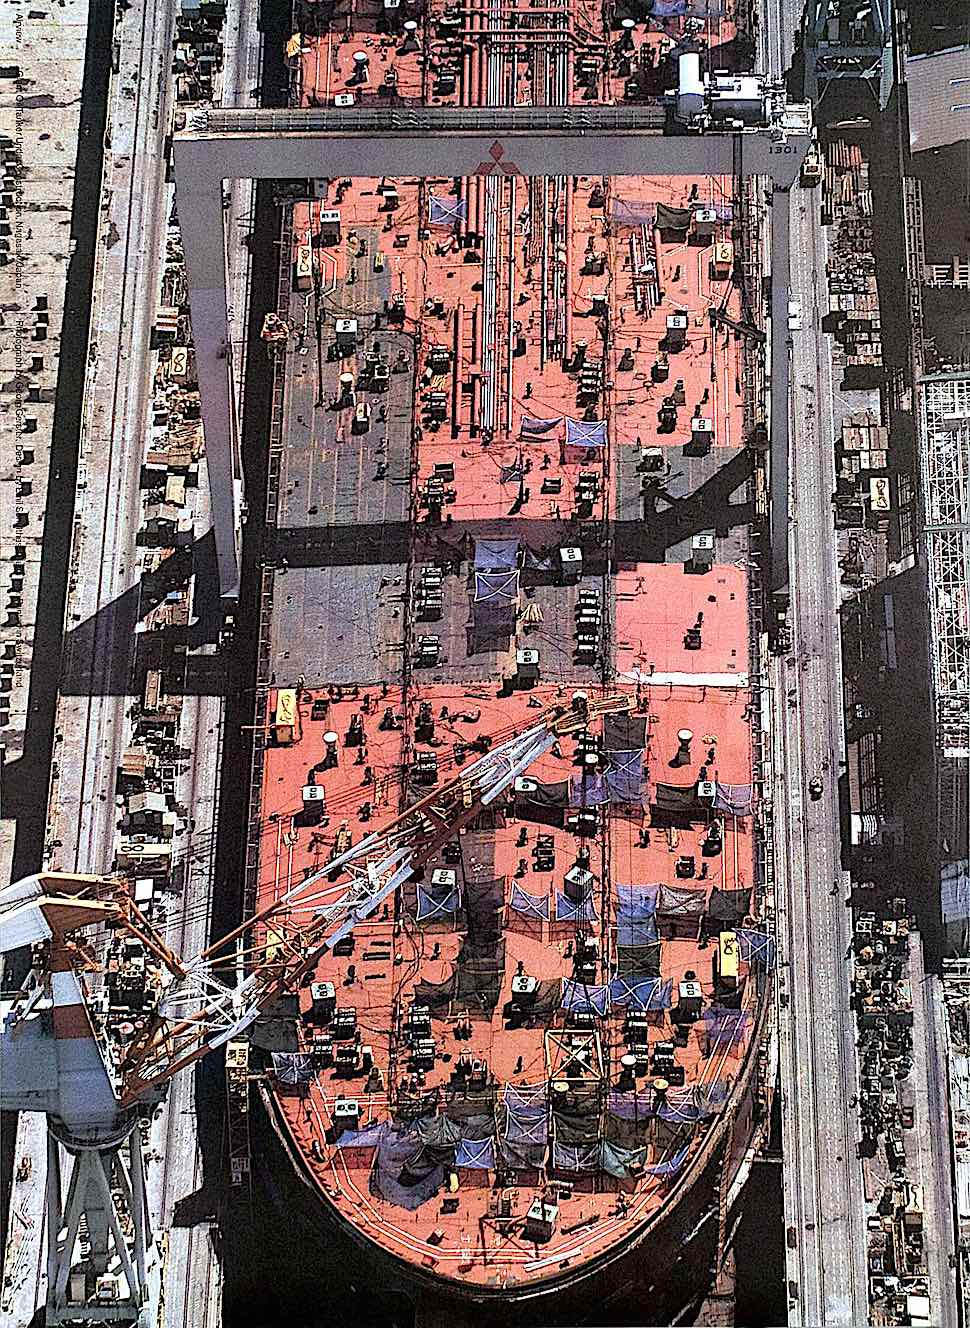 a George Gerster photograph of a ship in dry dock, from a birdseye view